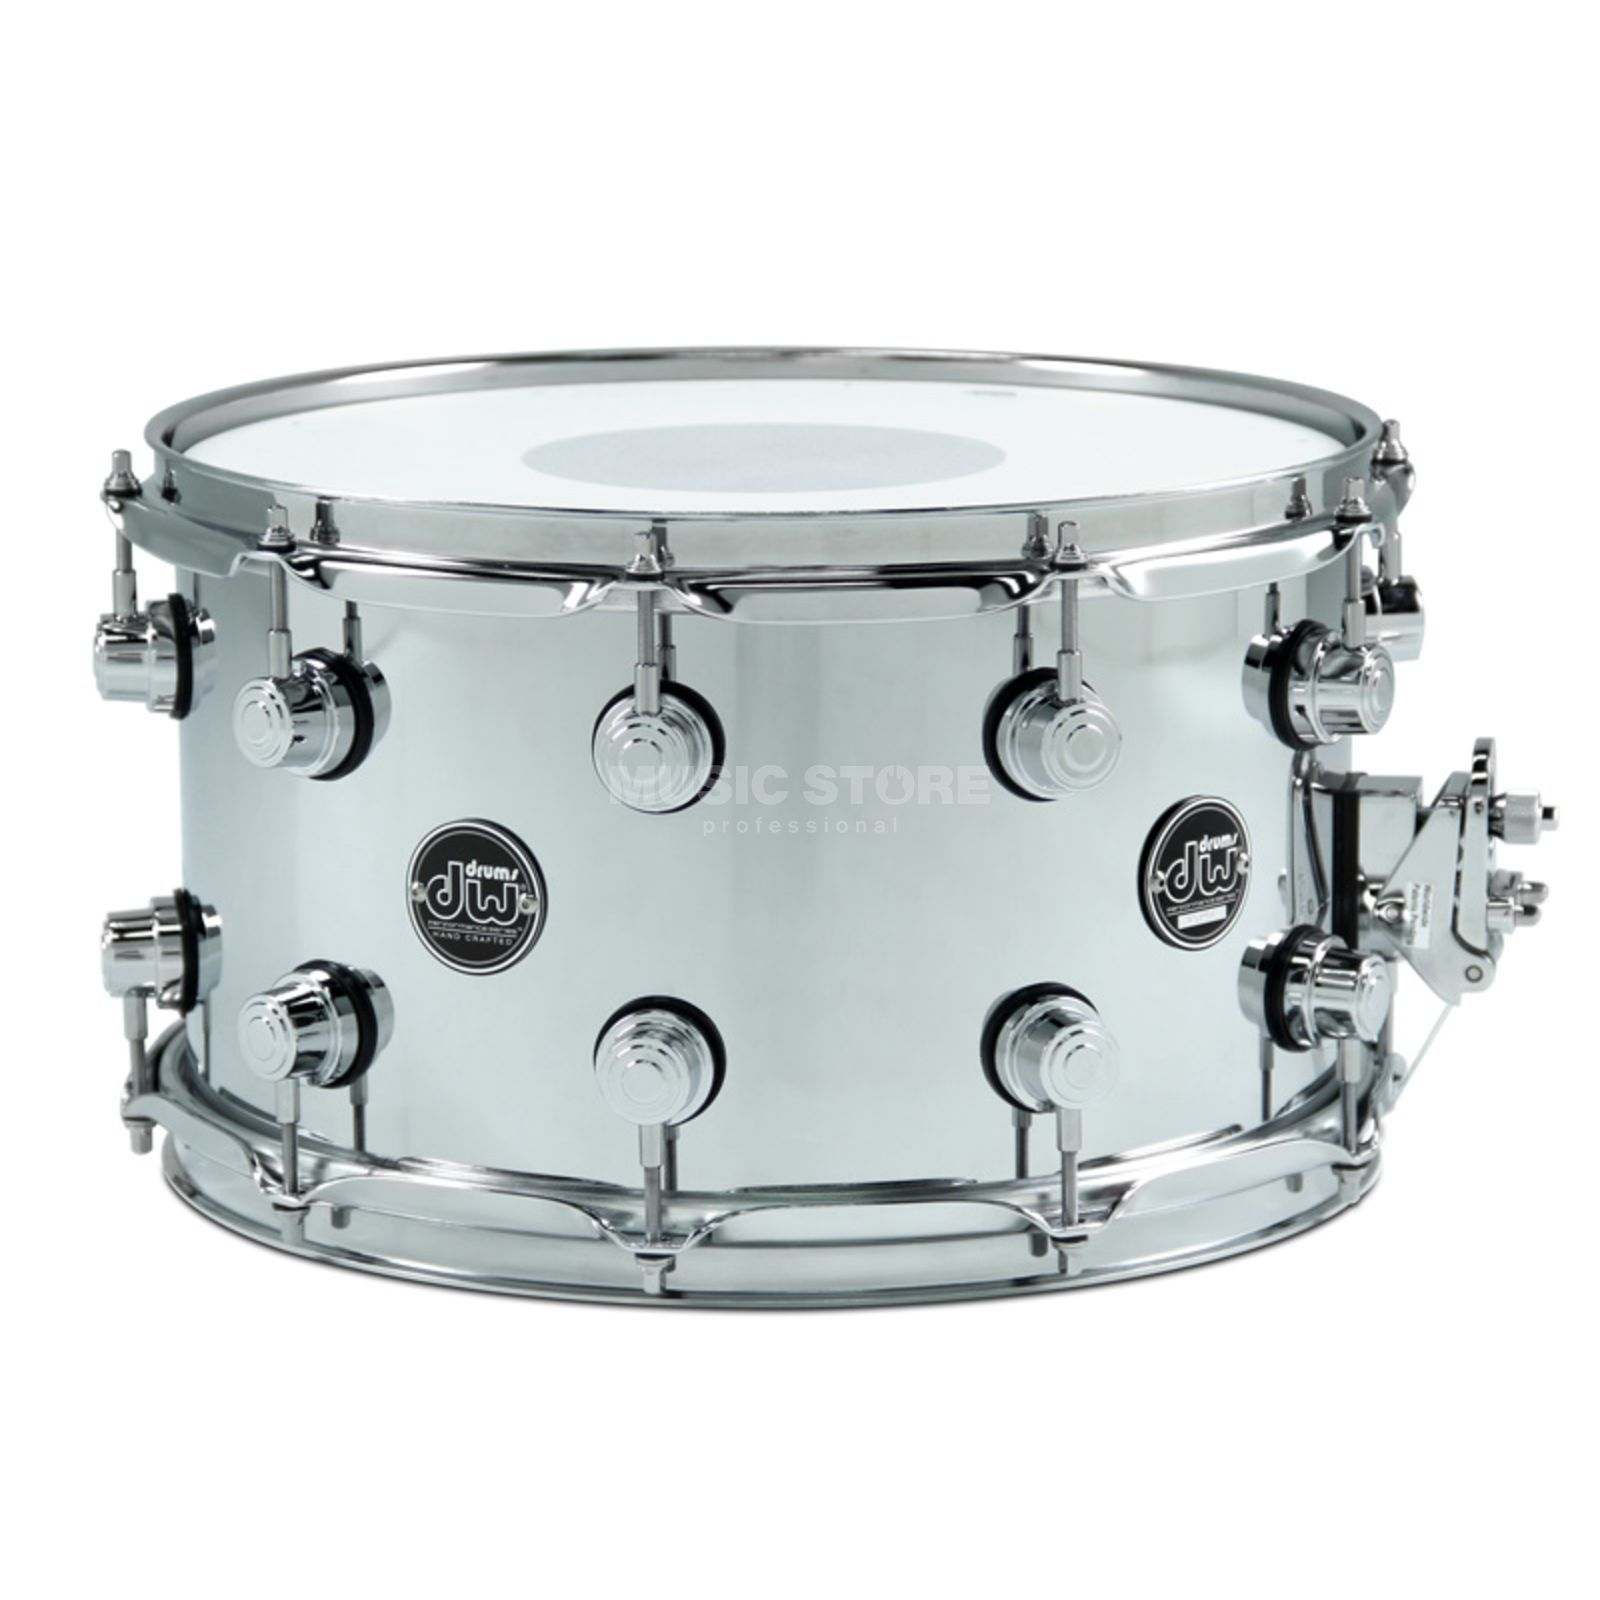 "Drum Workshop Performance Snare Stahl, 14""x6,5"" Produktbild"